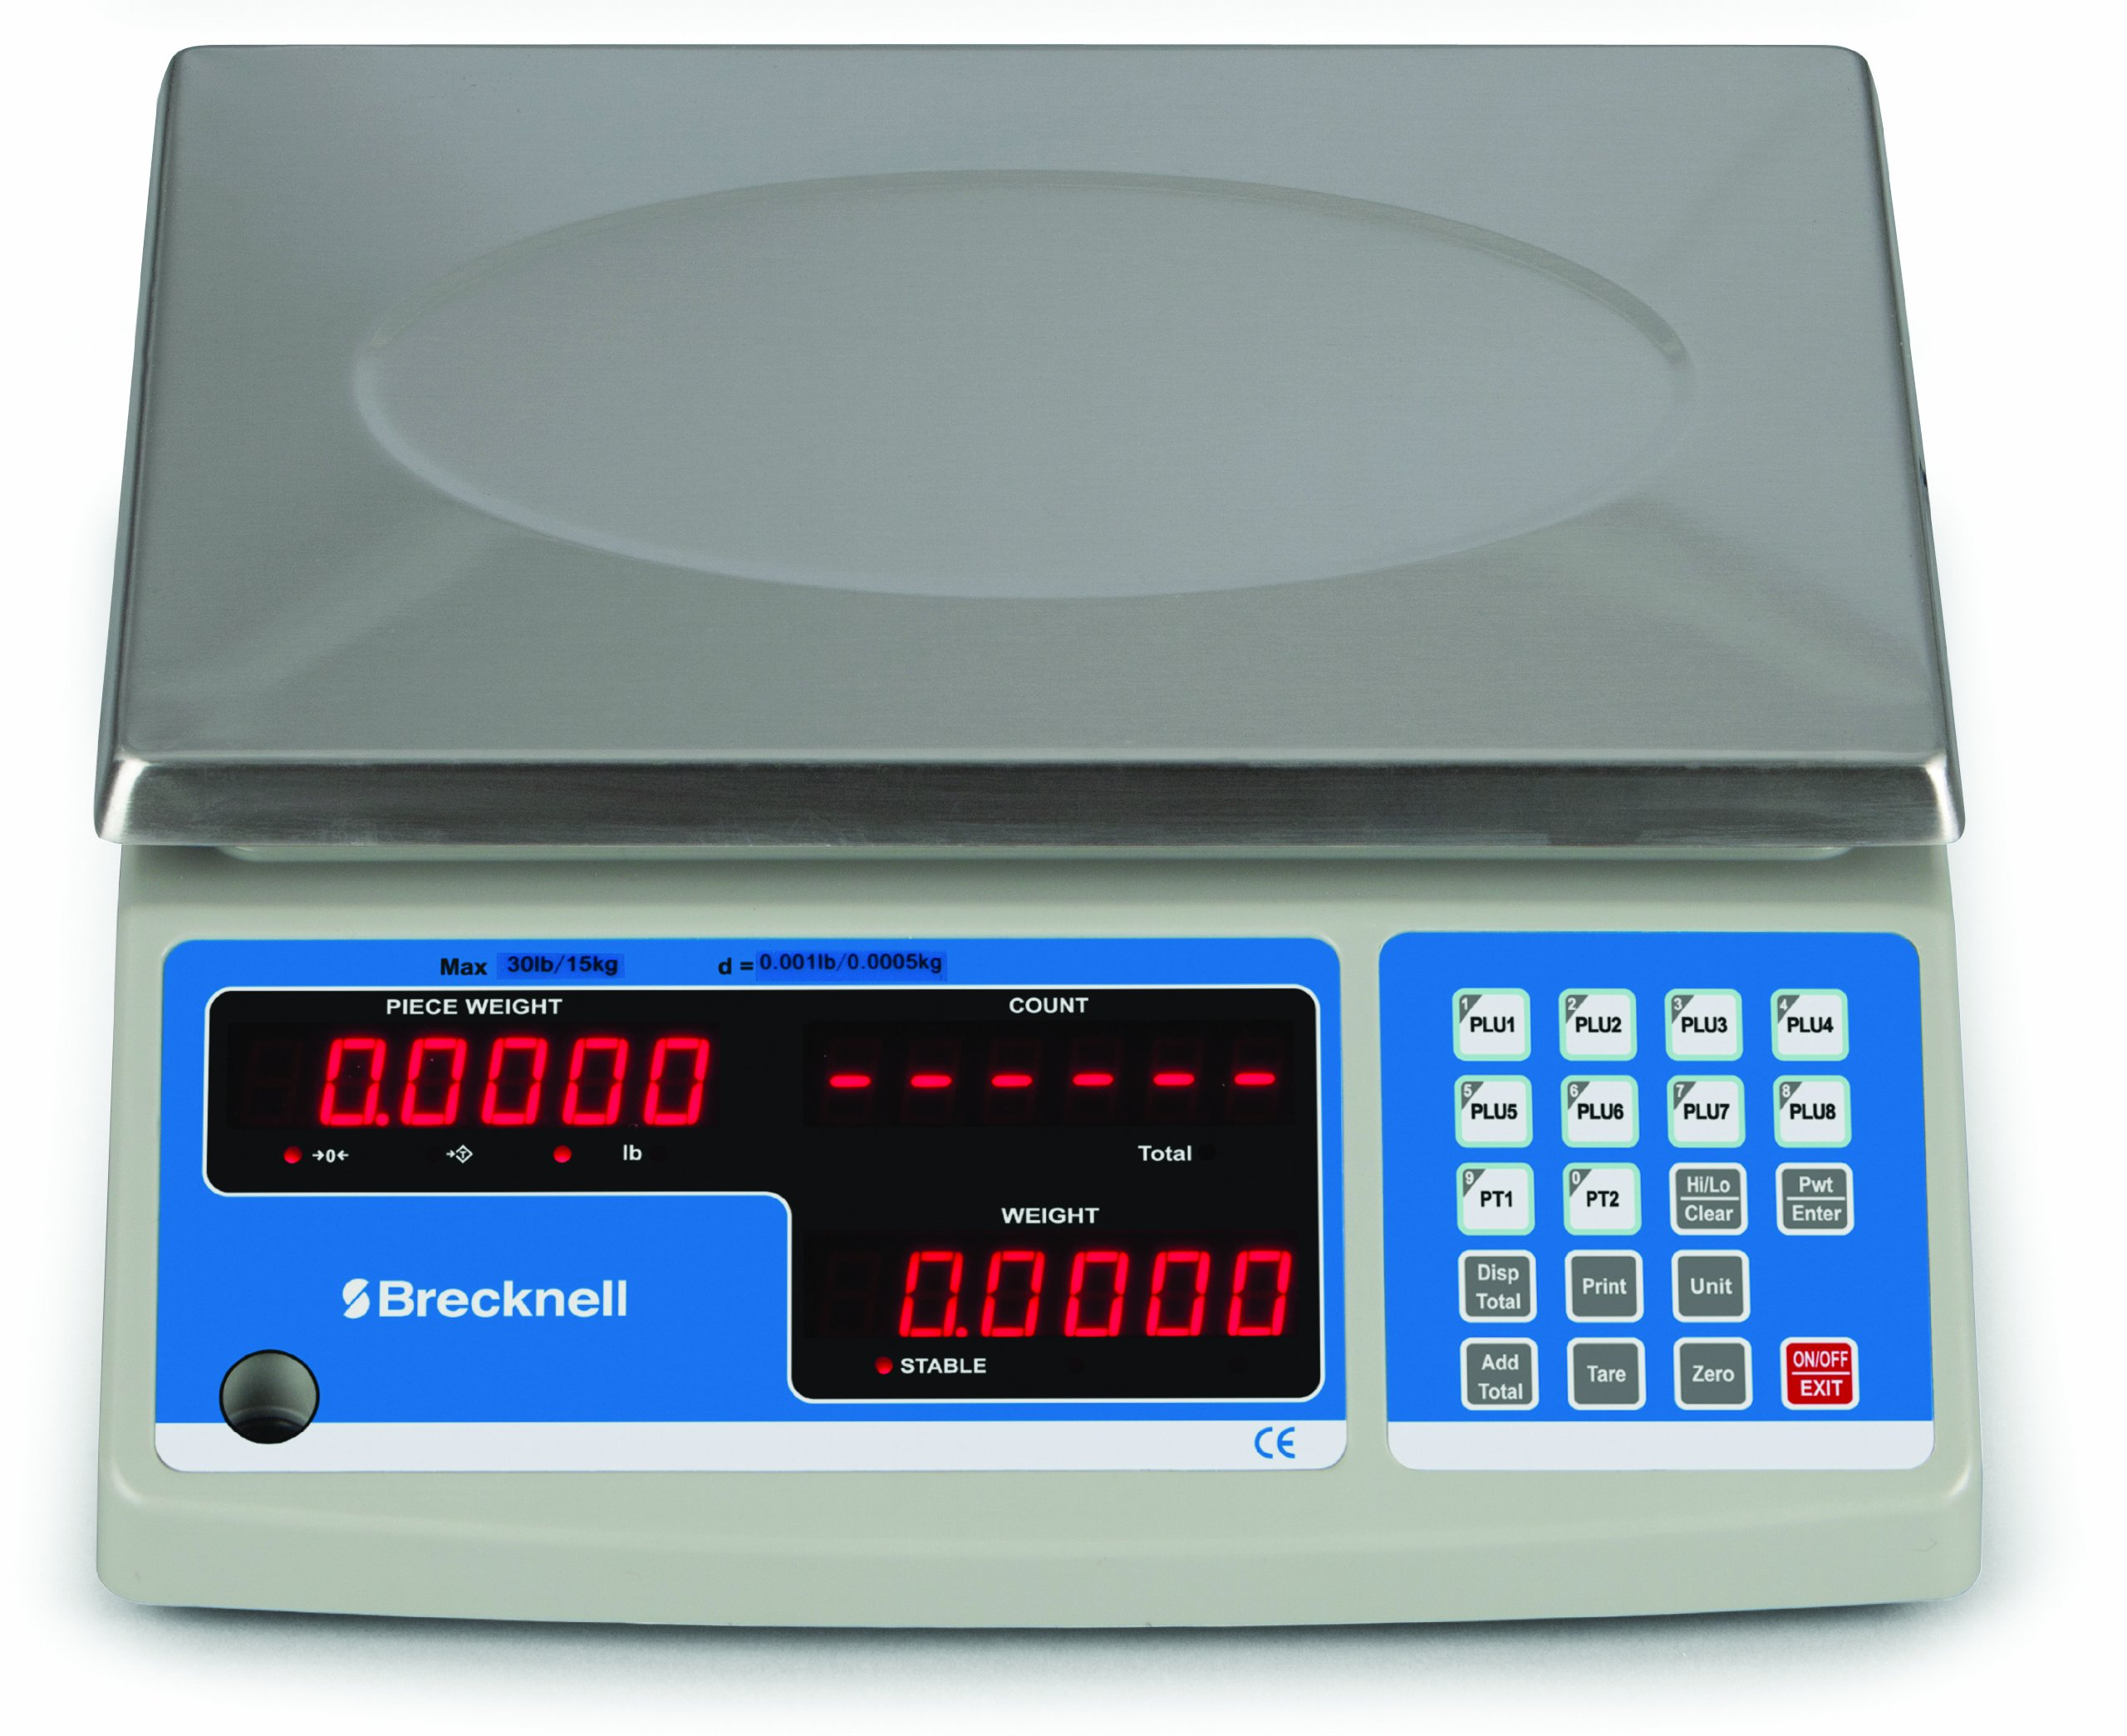 Brecknell B-140-60 Counting Scale, 30 KG x 1 G, 60 LB x 0.002 LB